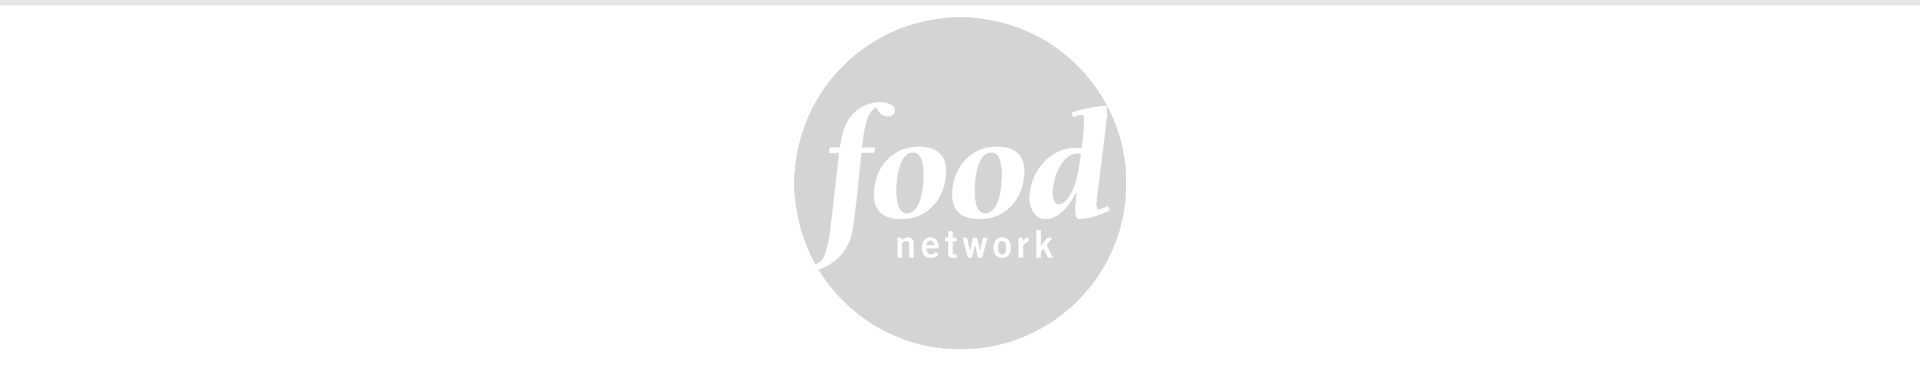 Footer-food-network